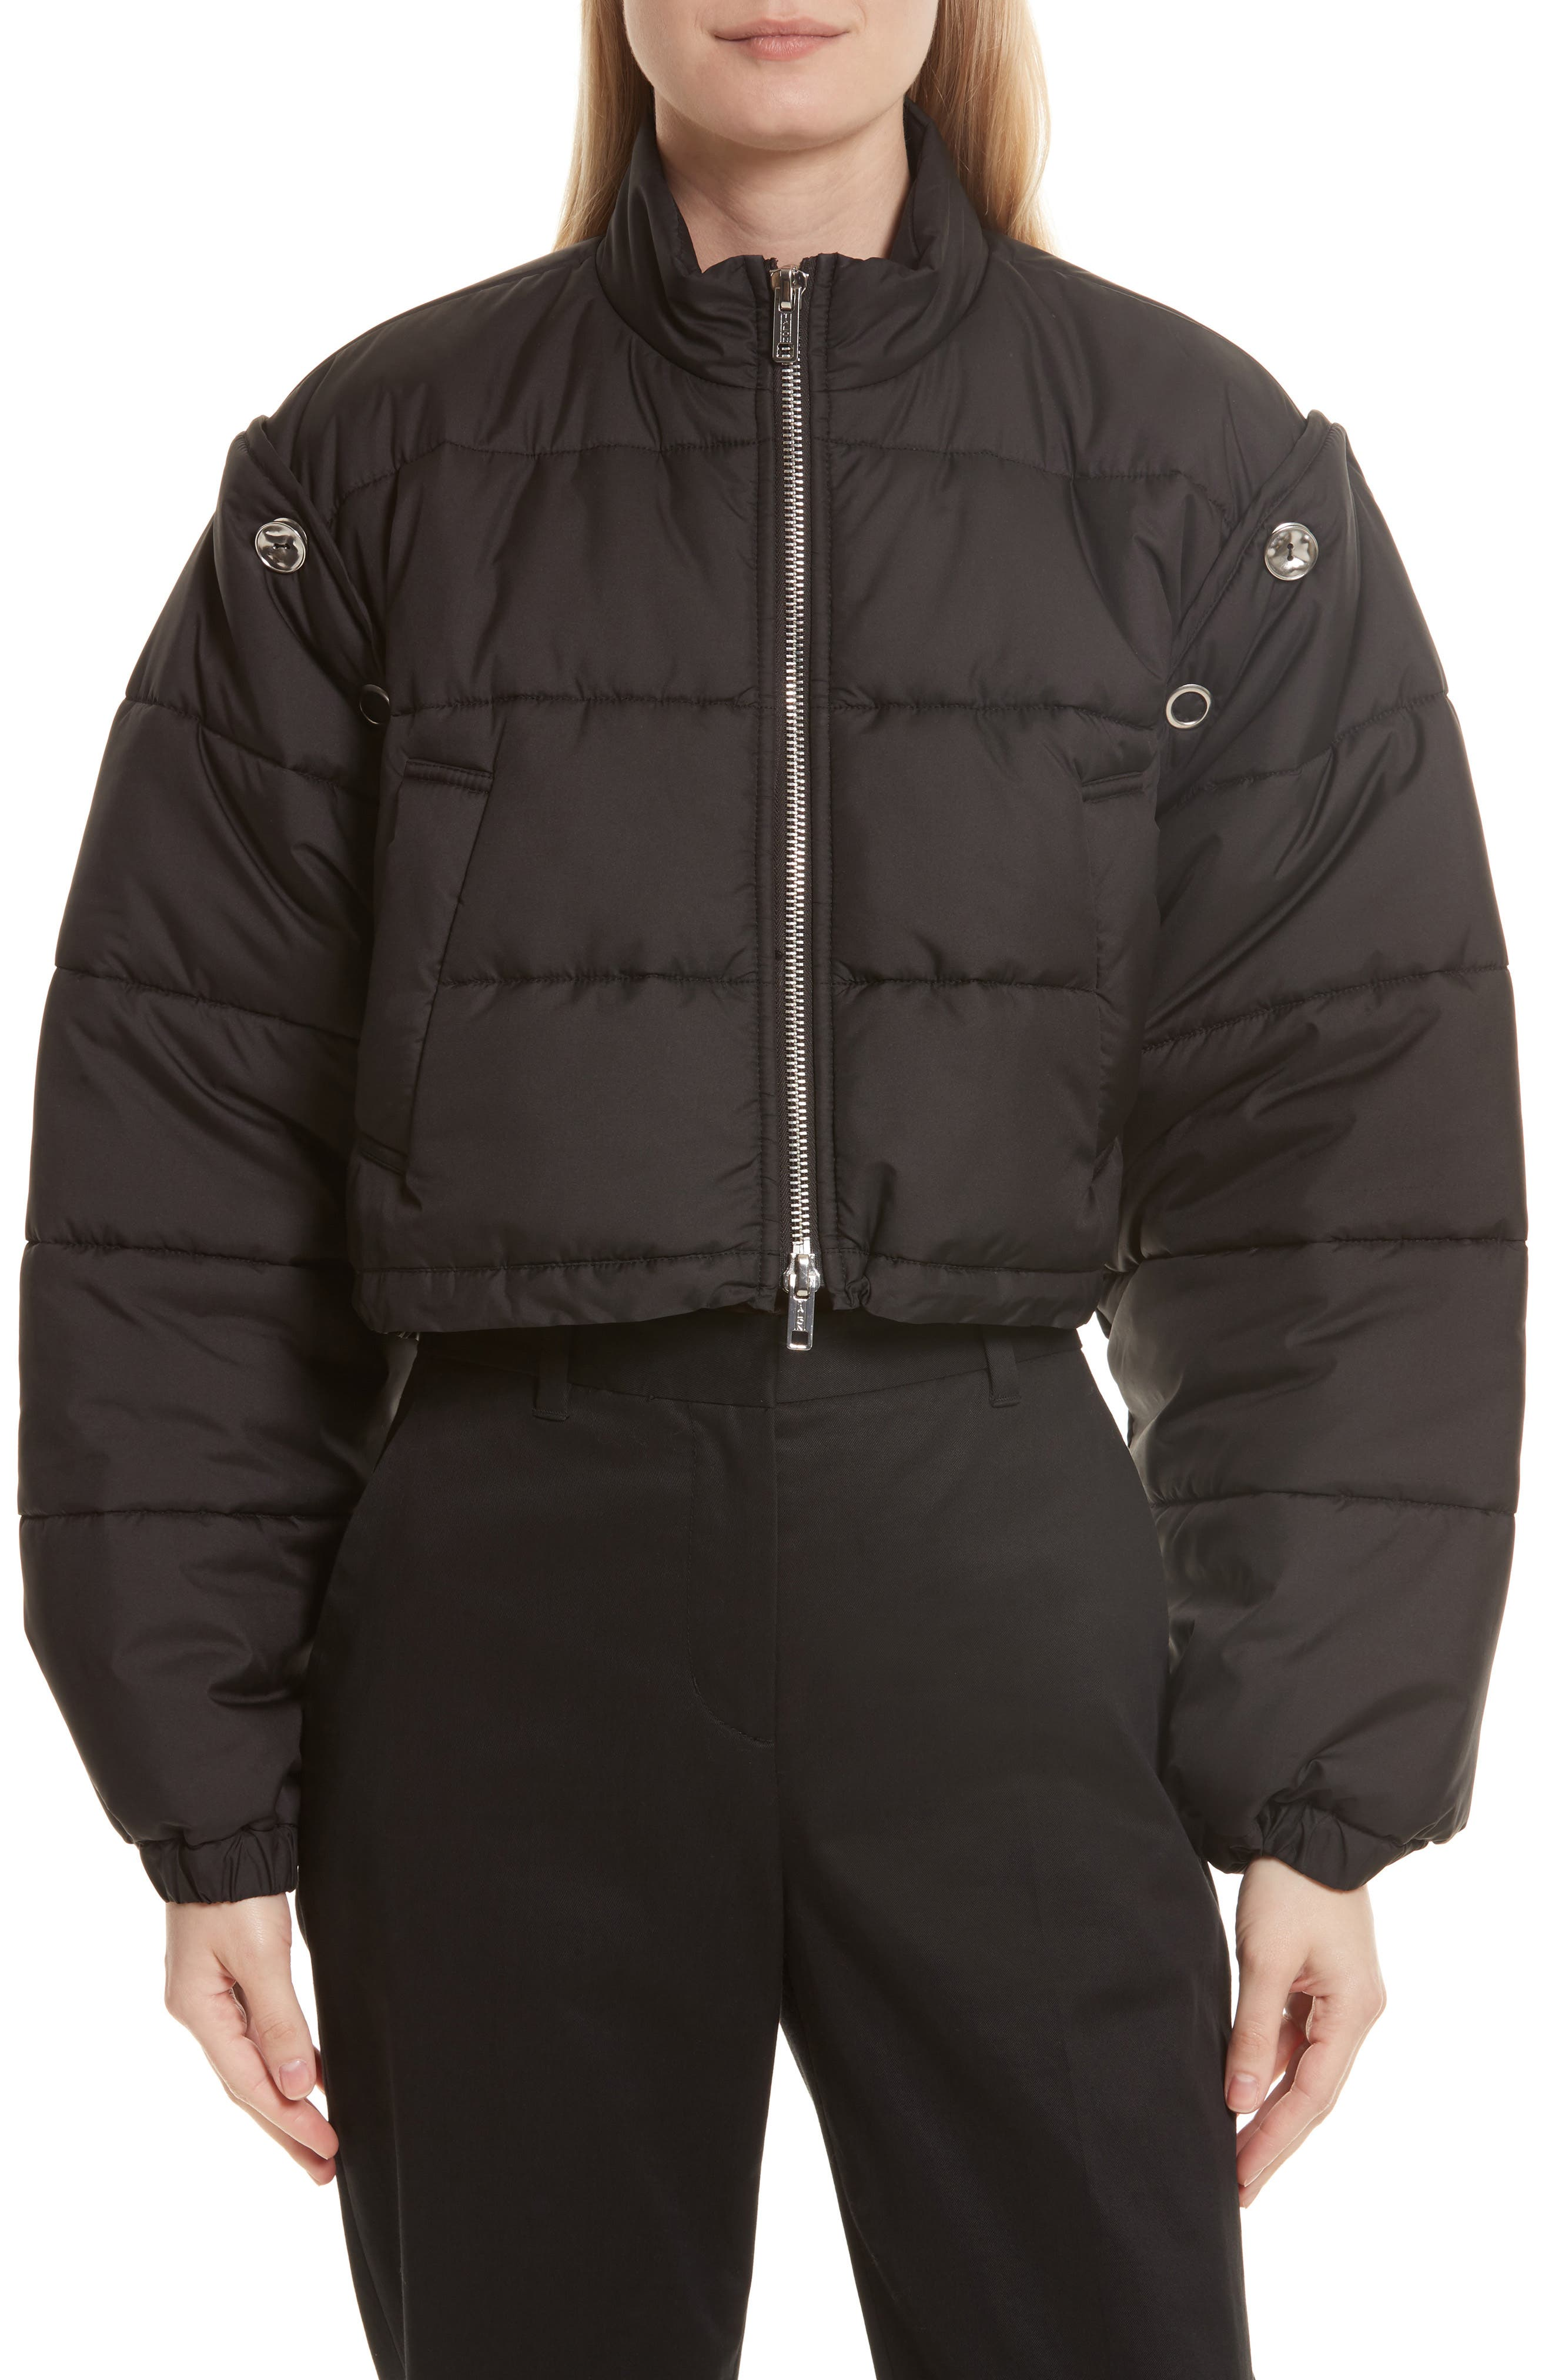 3.1 Phillip Lim Quilted Bomber